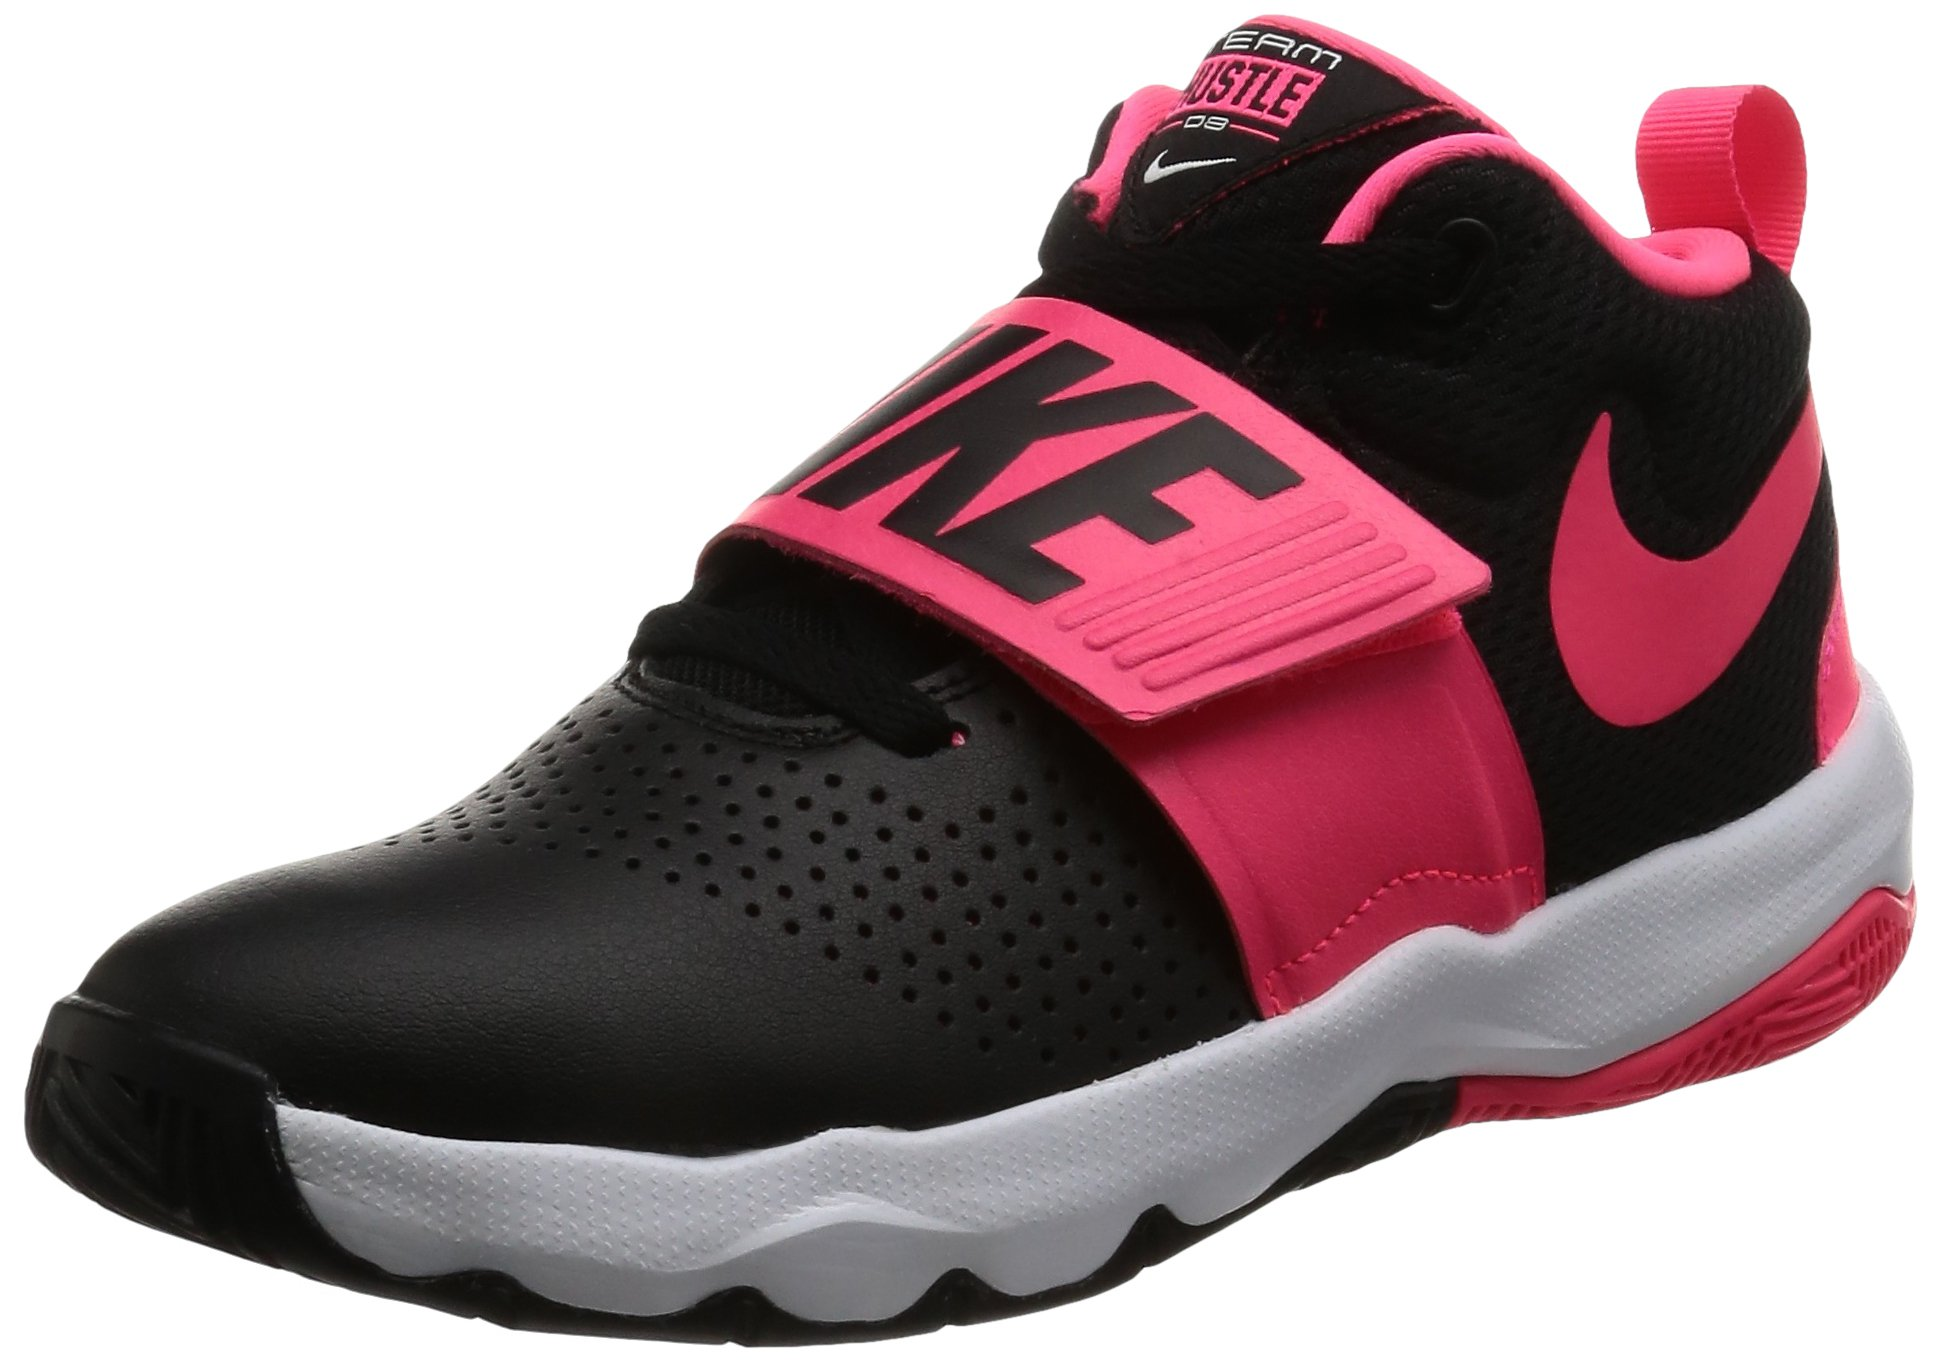 Nike Team Hustle D 8 (GS) Sneaker, Black/Racer Pink-White, 6.5Y Regular US Big Kid